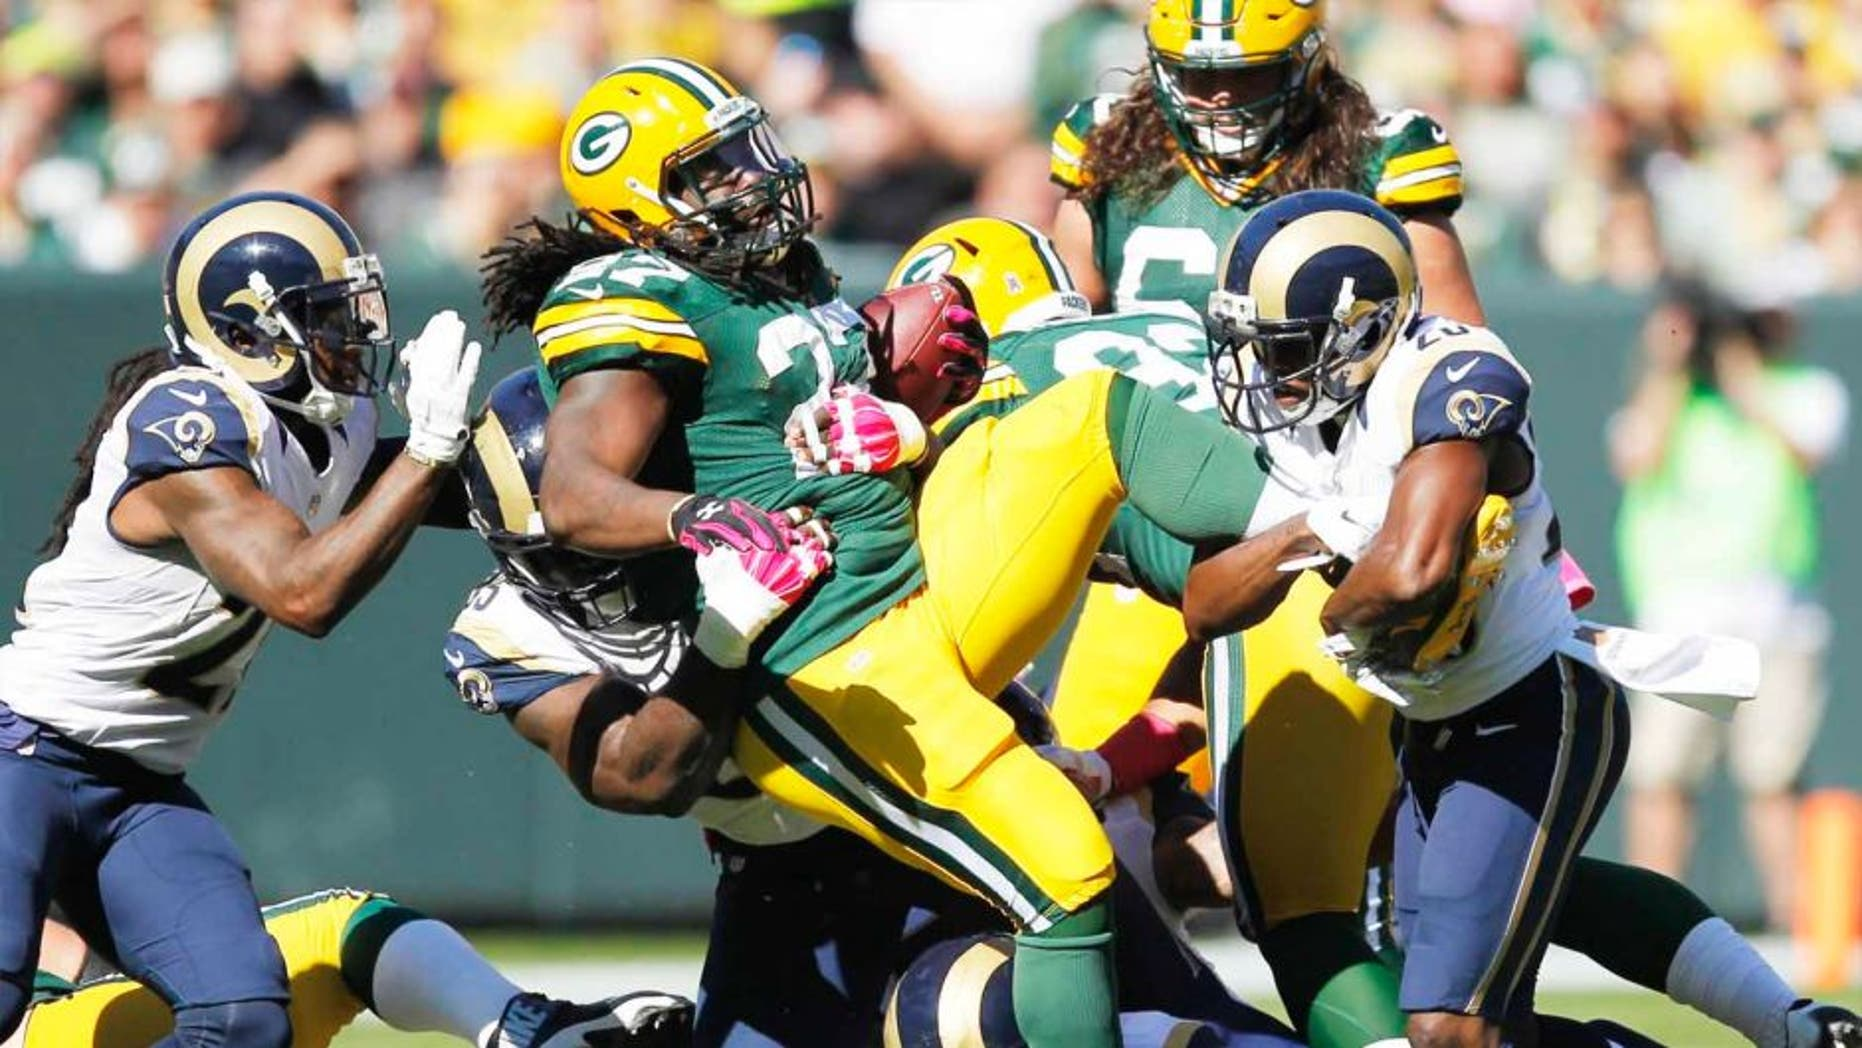 The Green Bay Packers' Eddie Lacy is stopped during the first half against the St. Louis Rams on Sunday, Oct. 11, 2015, in Green Bay, Wis.